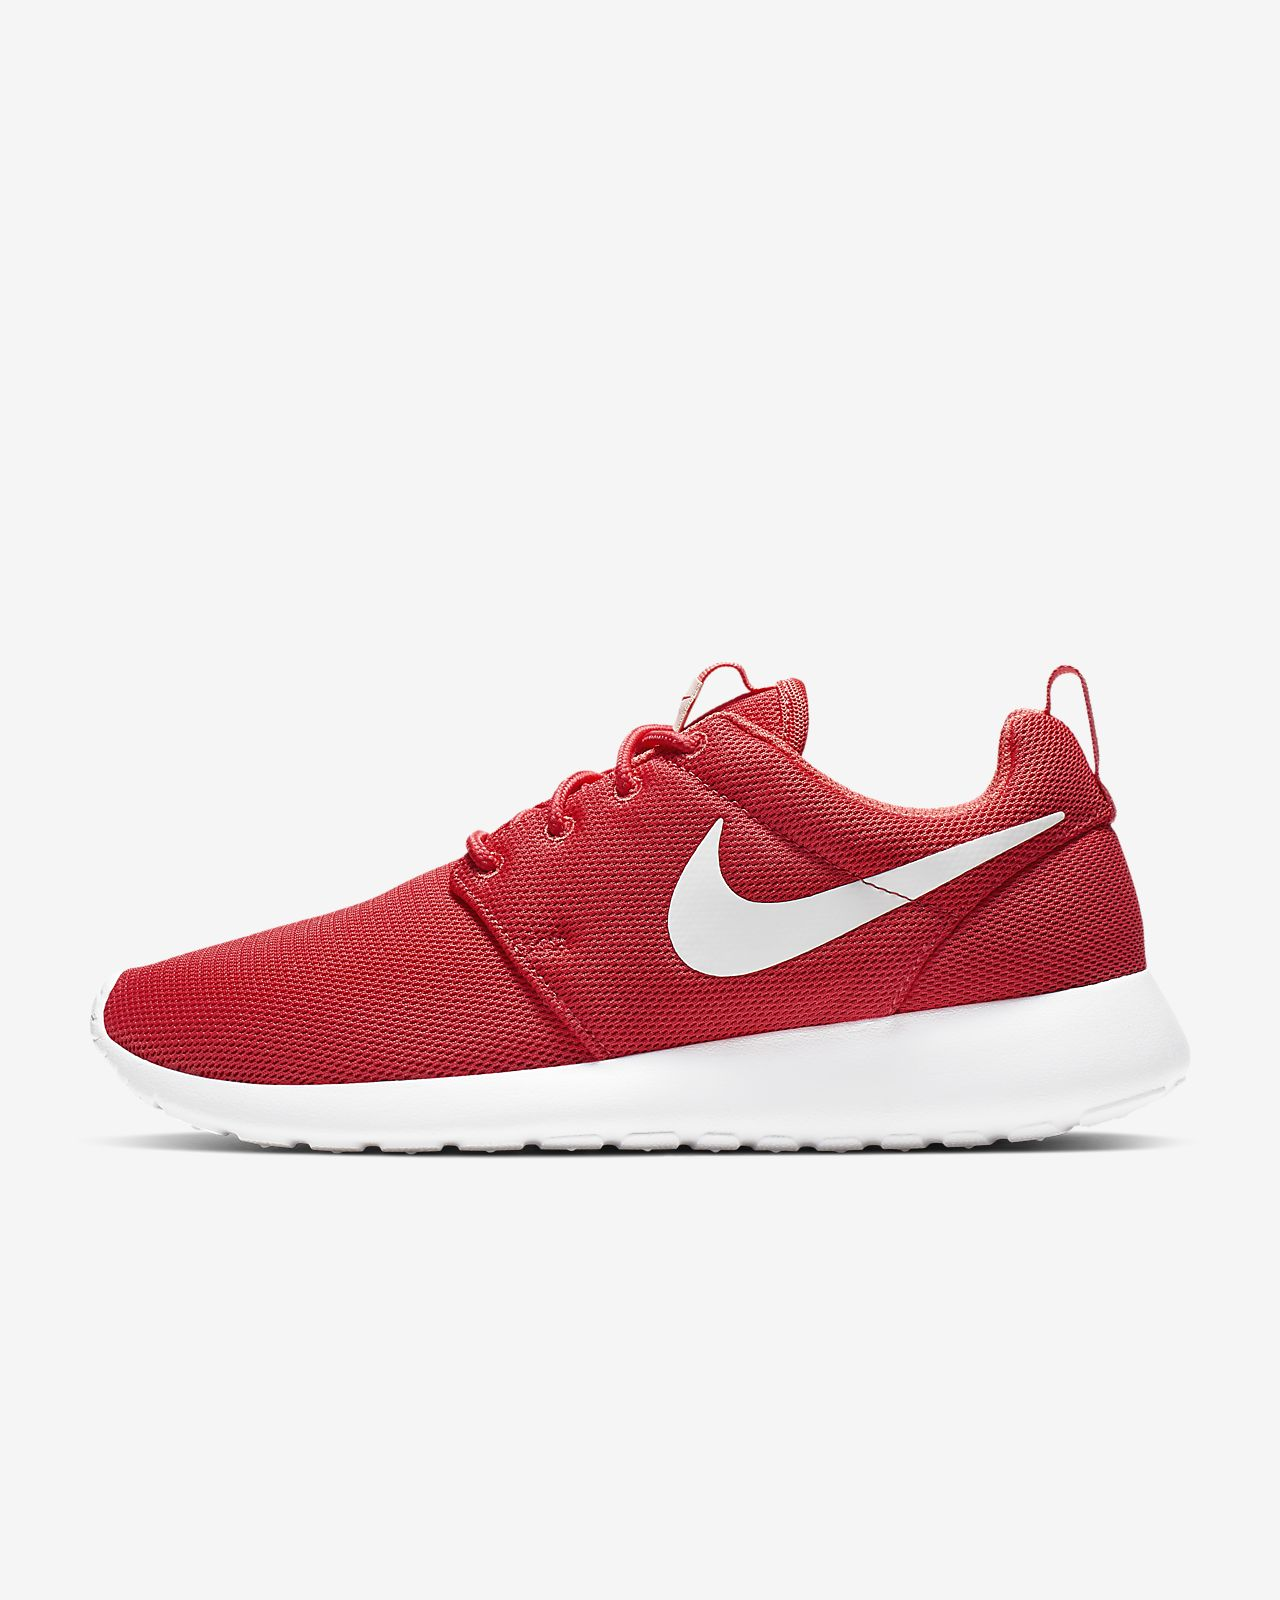 pretty nice 437d5 bcce4 Nike Roshe One Women s Shoe. Nike.com